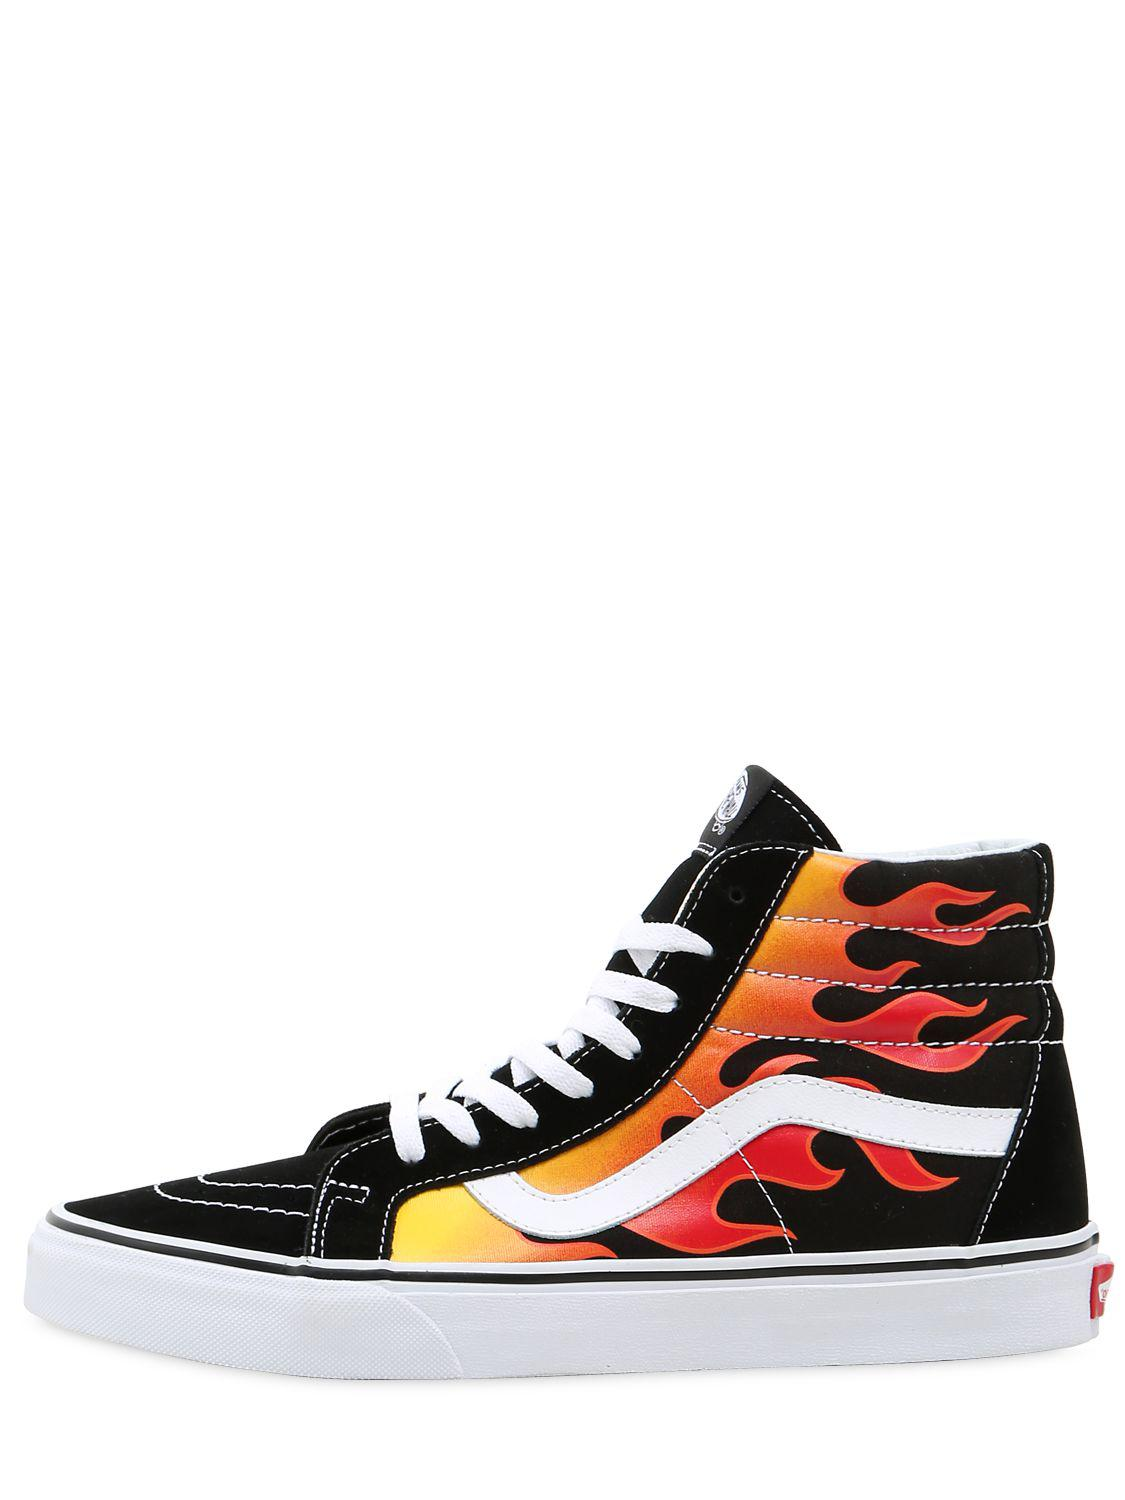 fa30e7c744 Vans flame hi high top sneakers in black for men lyst jpg 1125x1500 Fire  high top